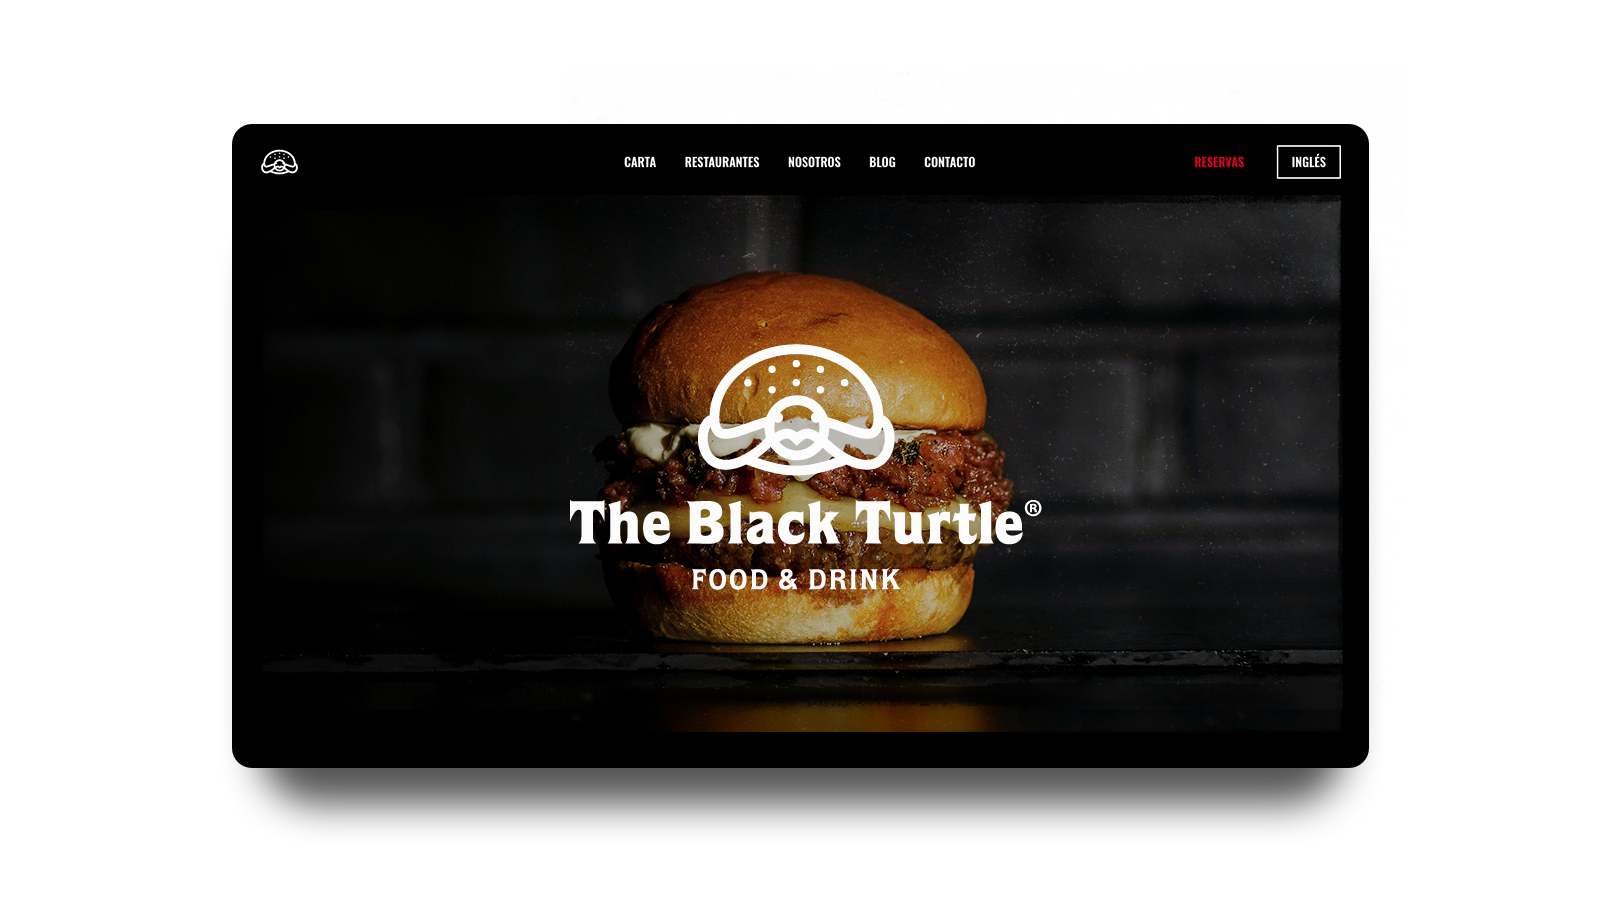 Las hamburguesas de autor hallan su réplica digital en la web de The Black Turtle